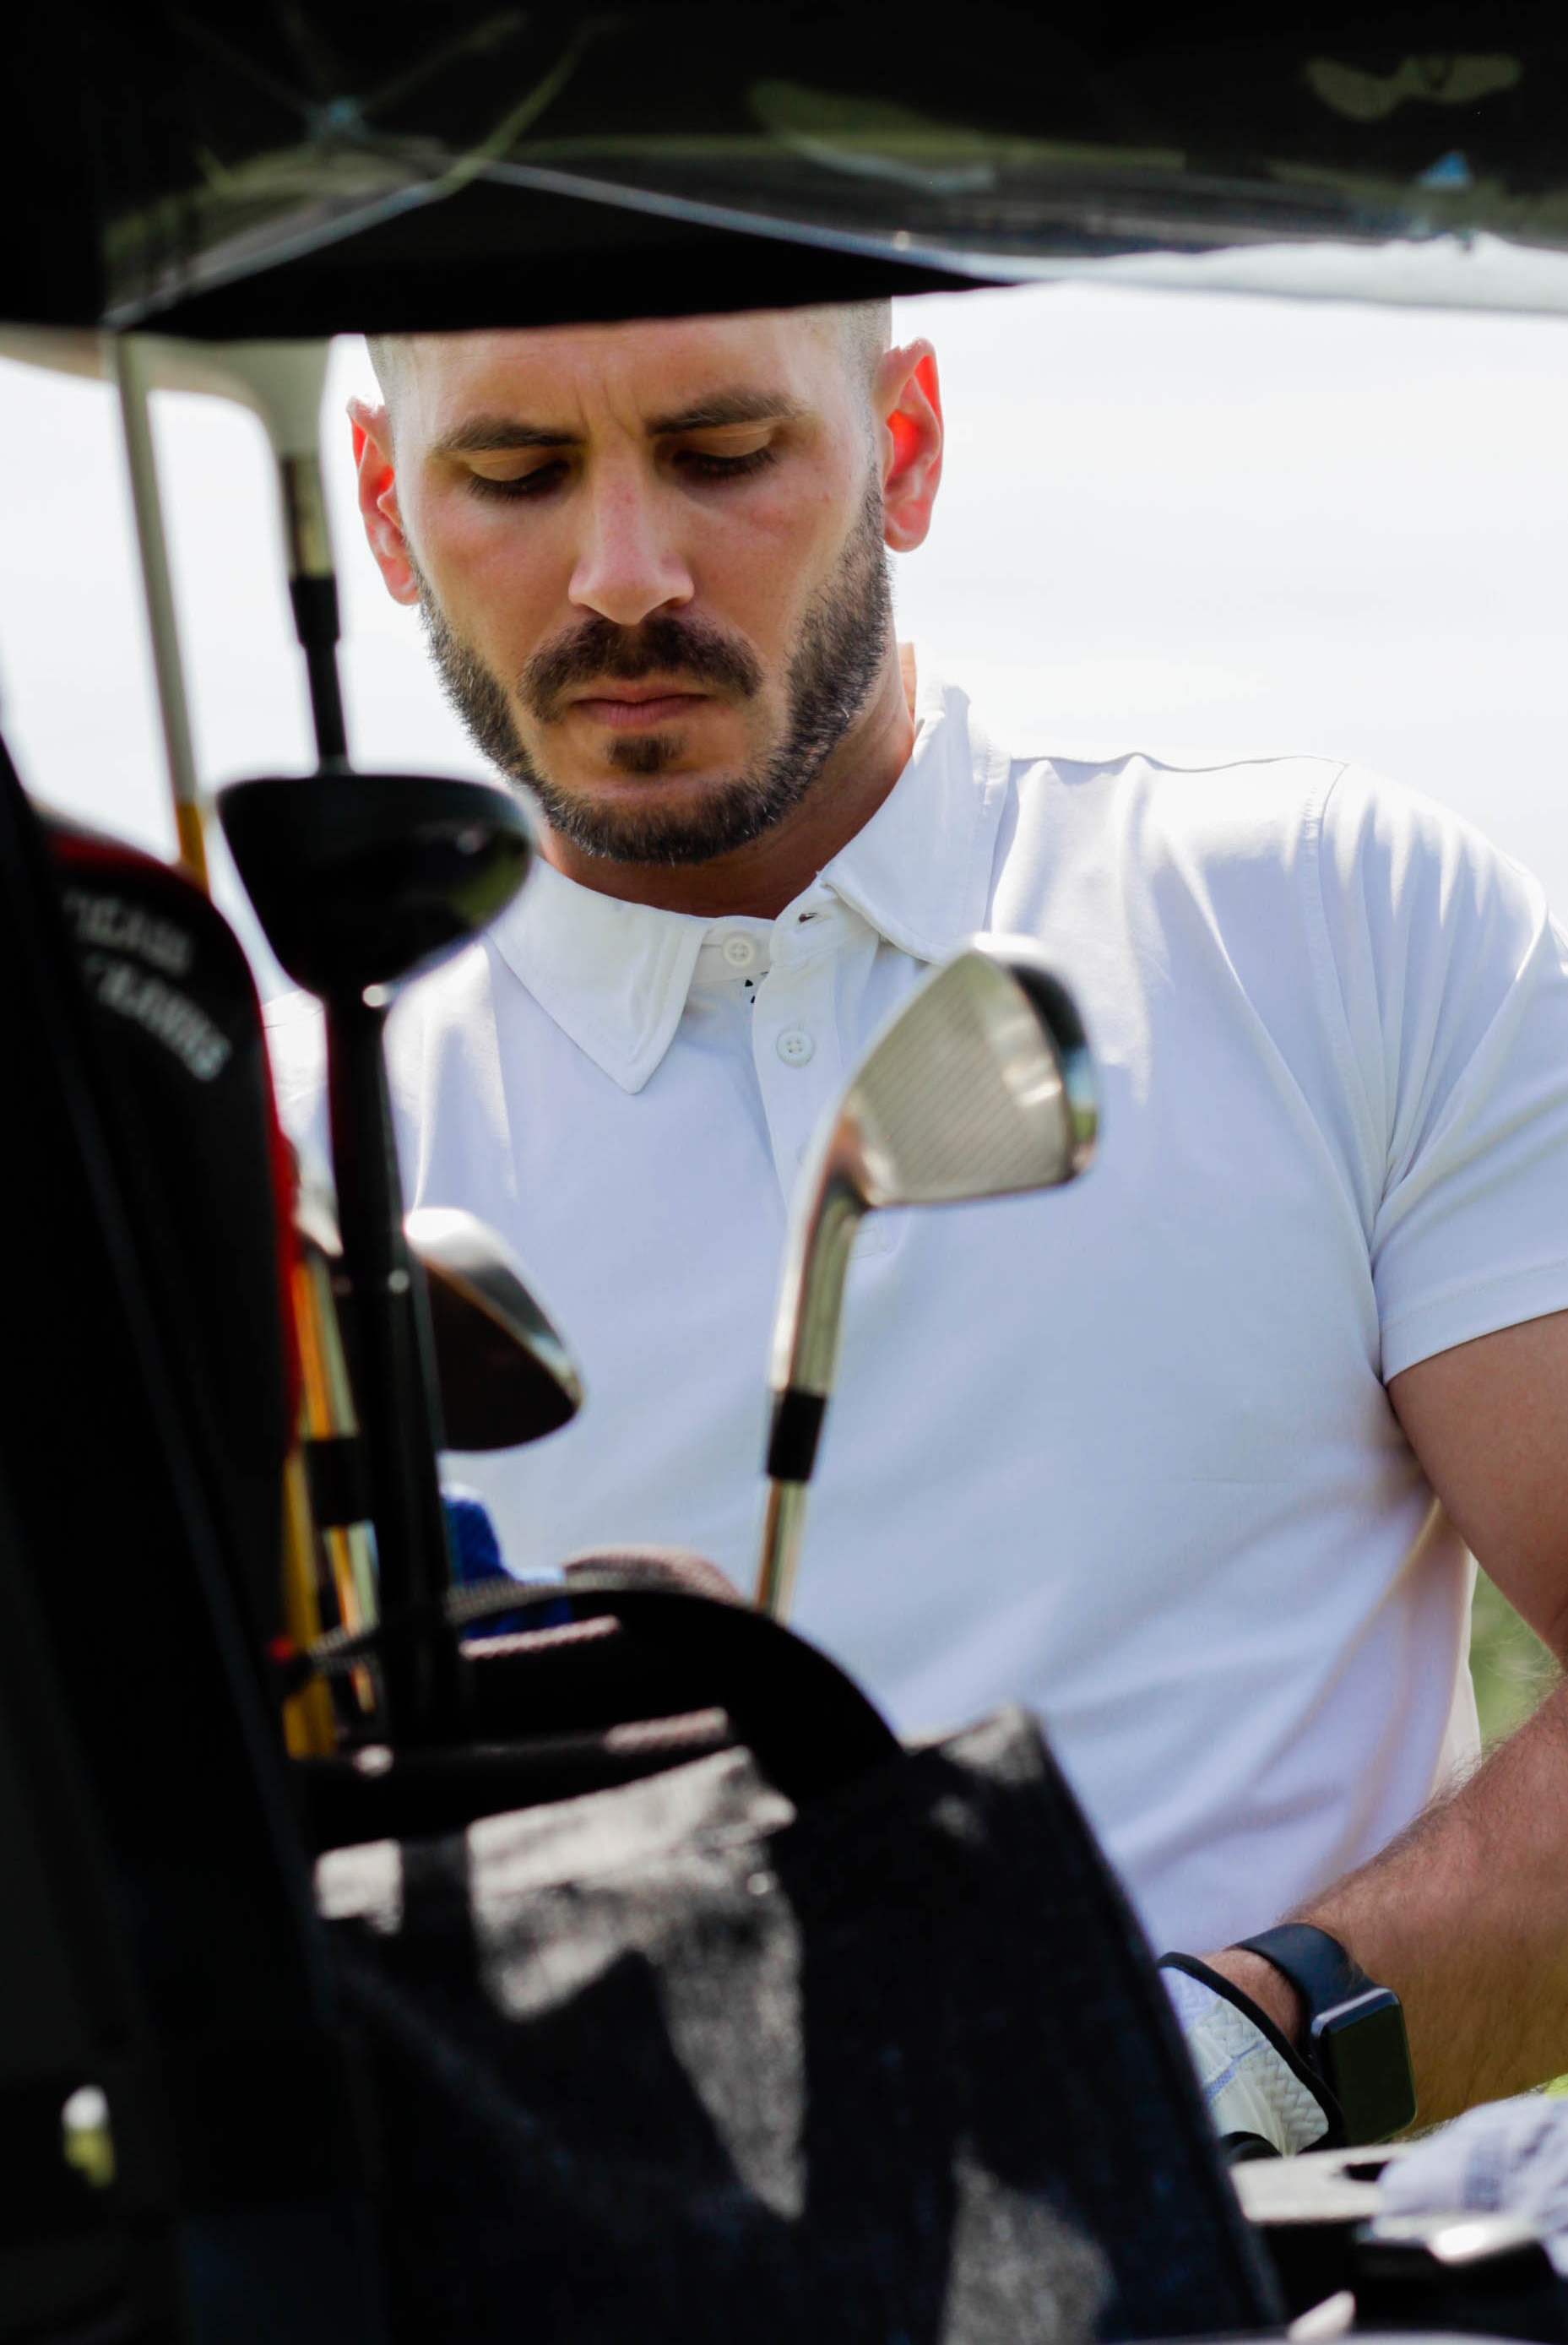 Wearing: The Etiquette Polo Shirt in White